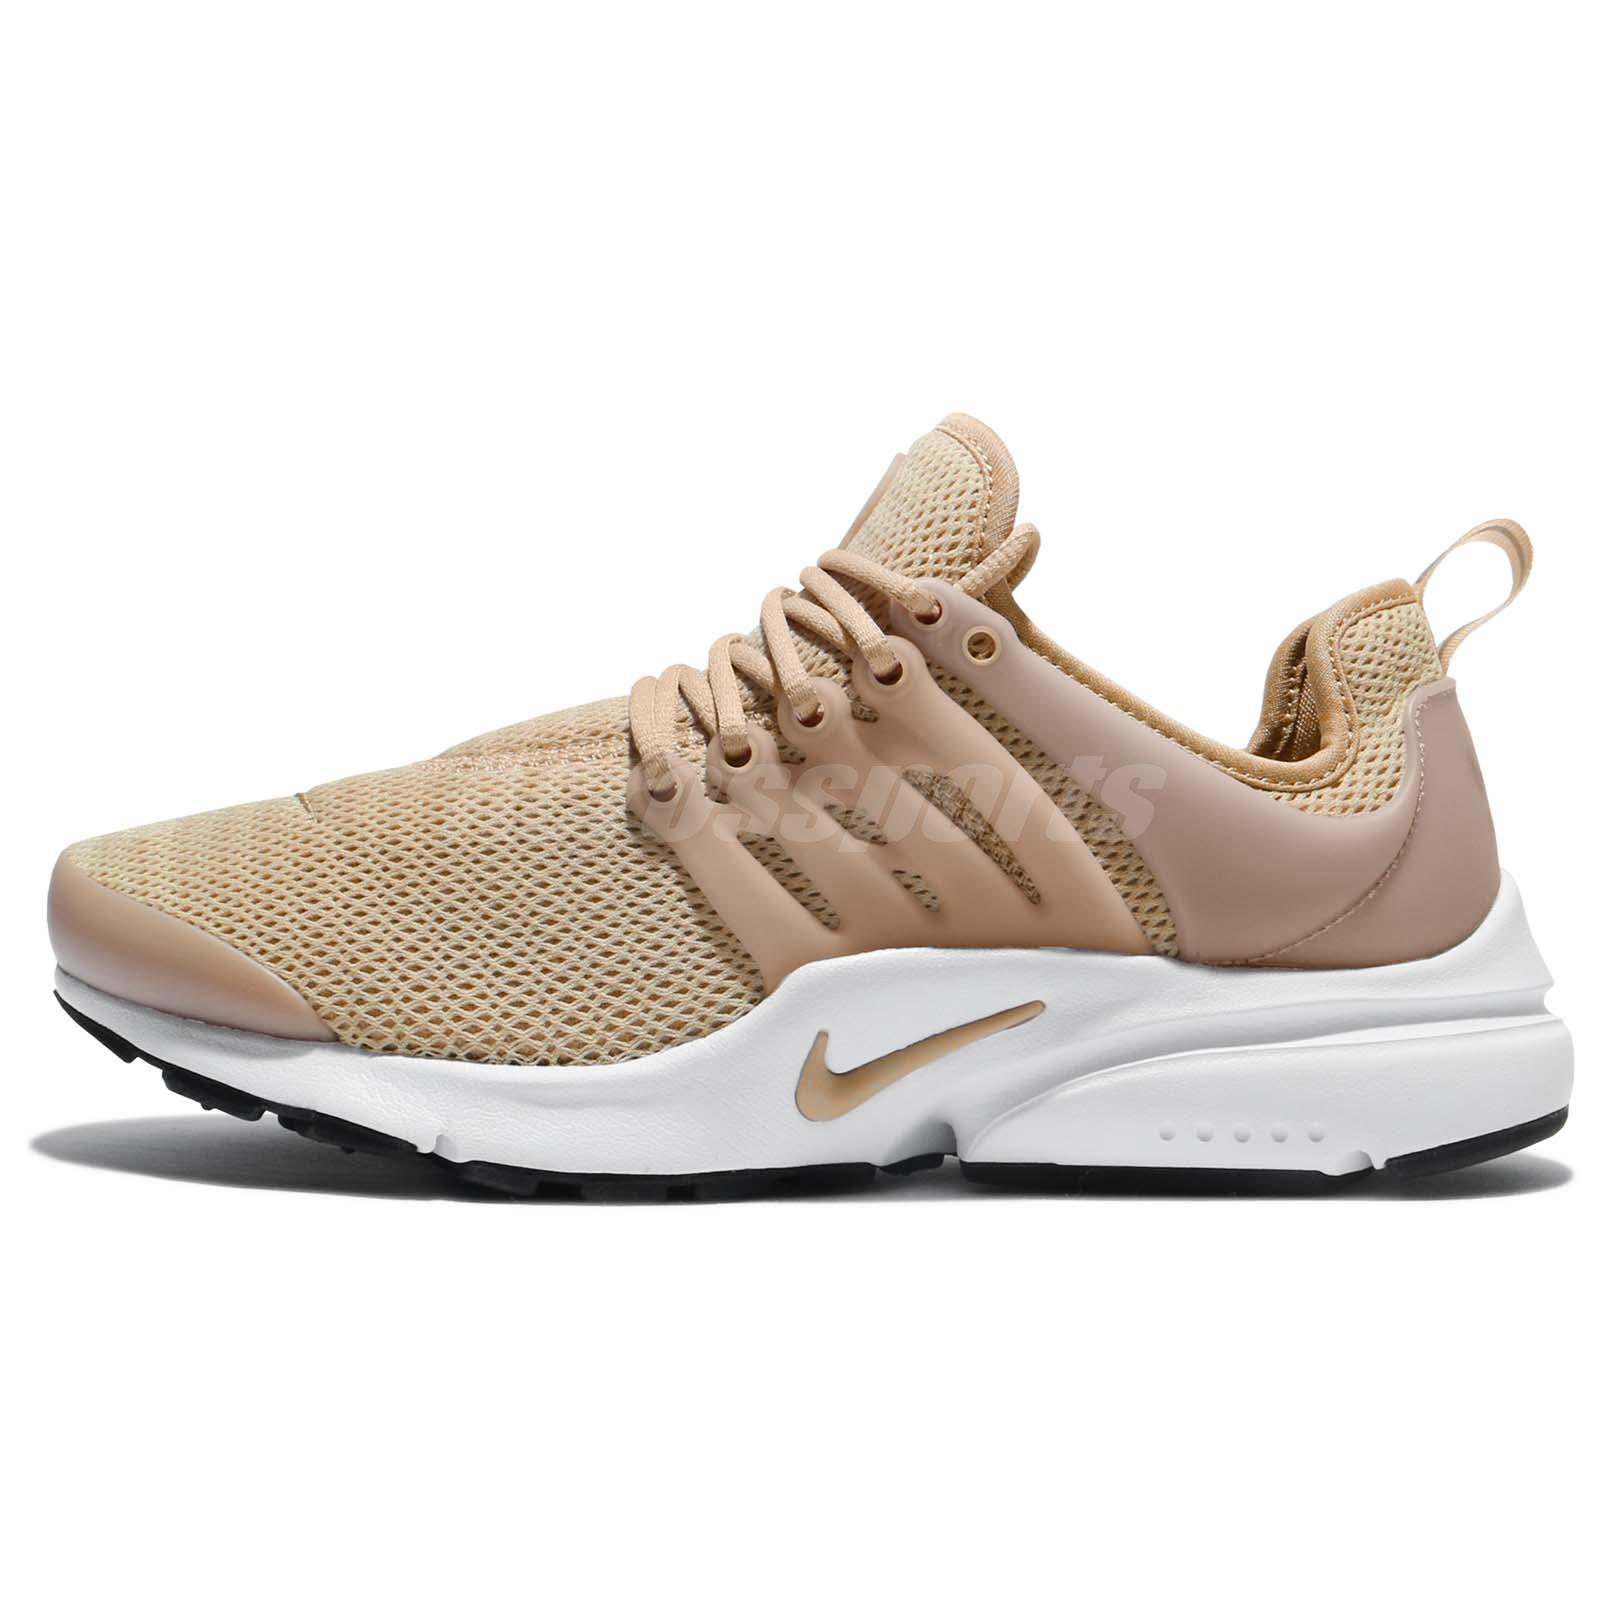 Air 200 Presto 878068 Wholesale Linen White Nike Black Wmns Eqx8TRvw